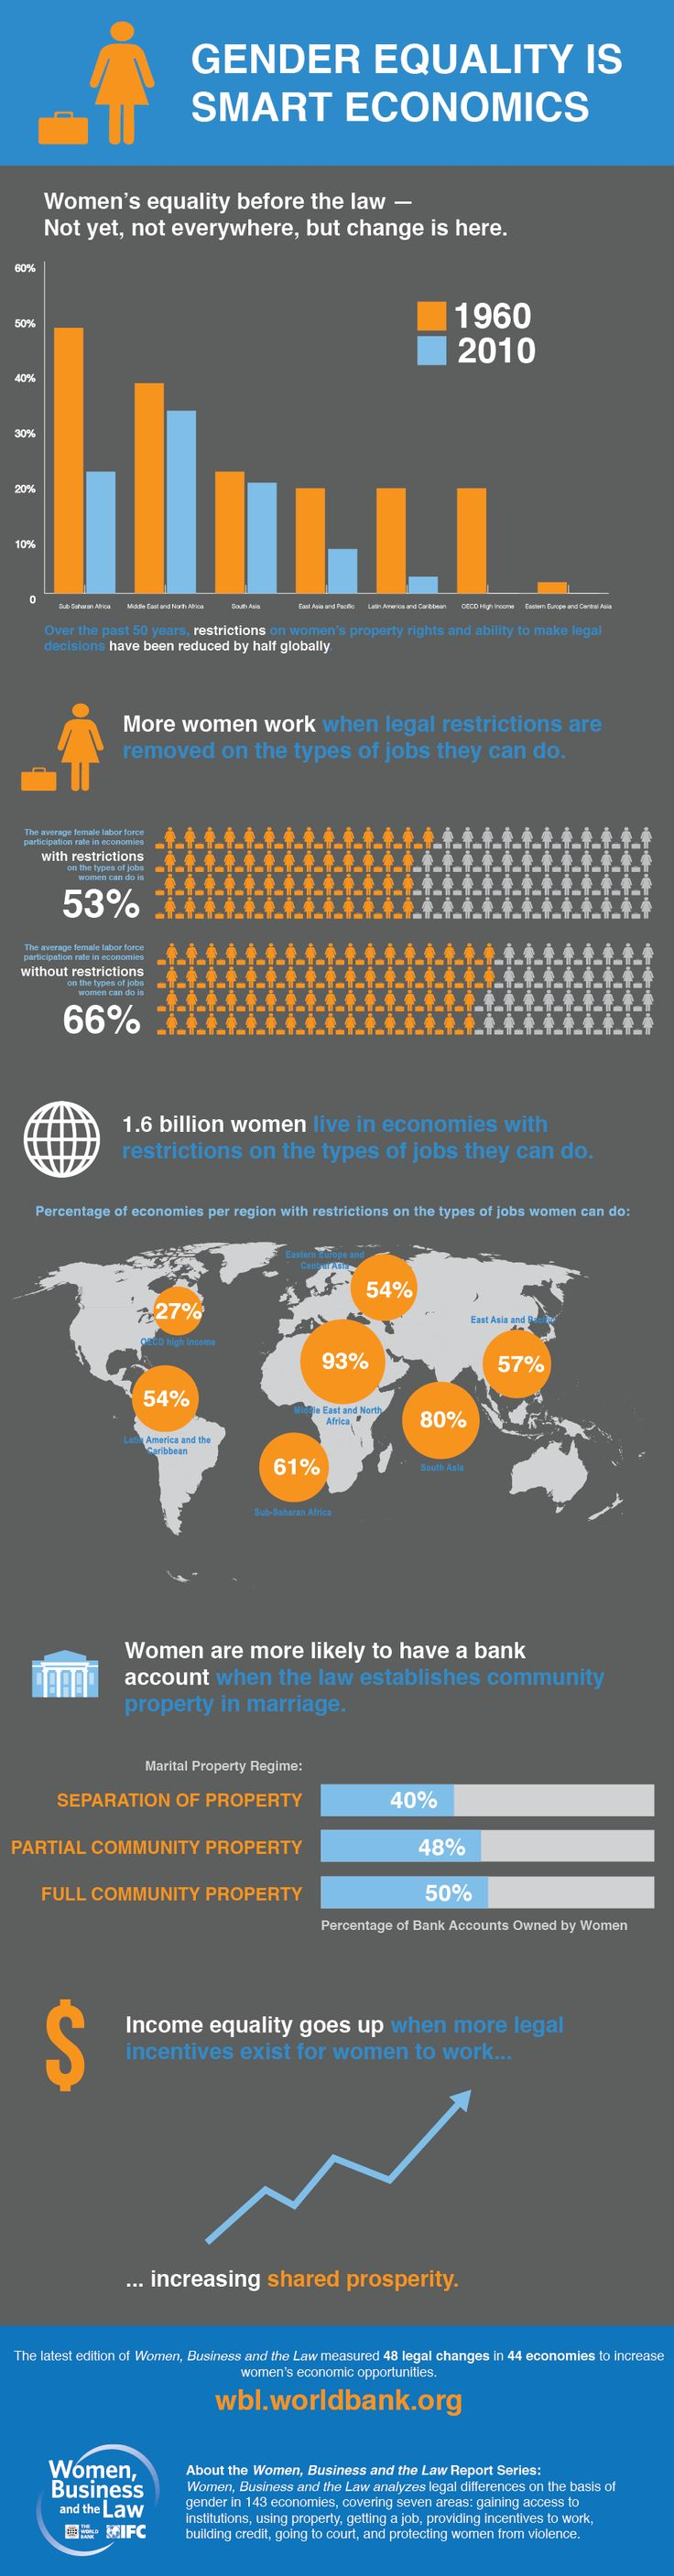 World Bank InfoGraphic on enabling environments and legal incentives for women s employment